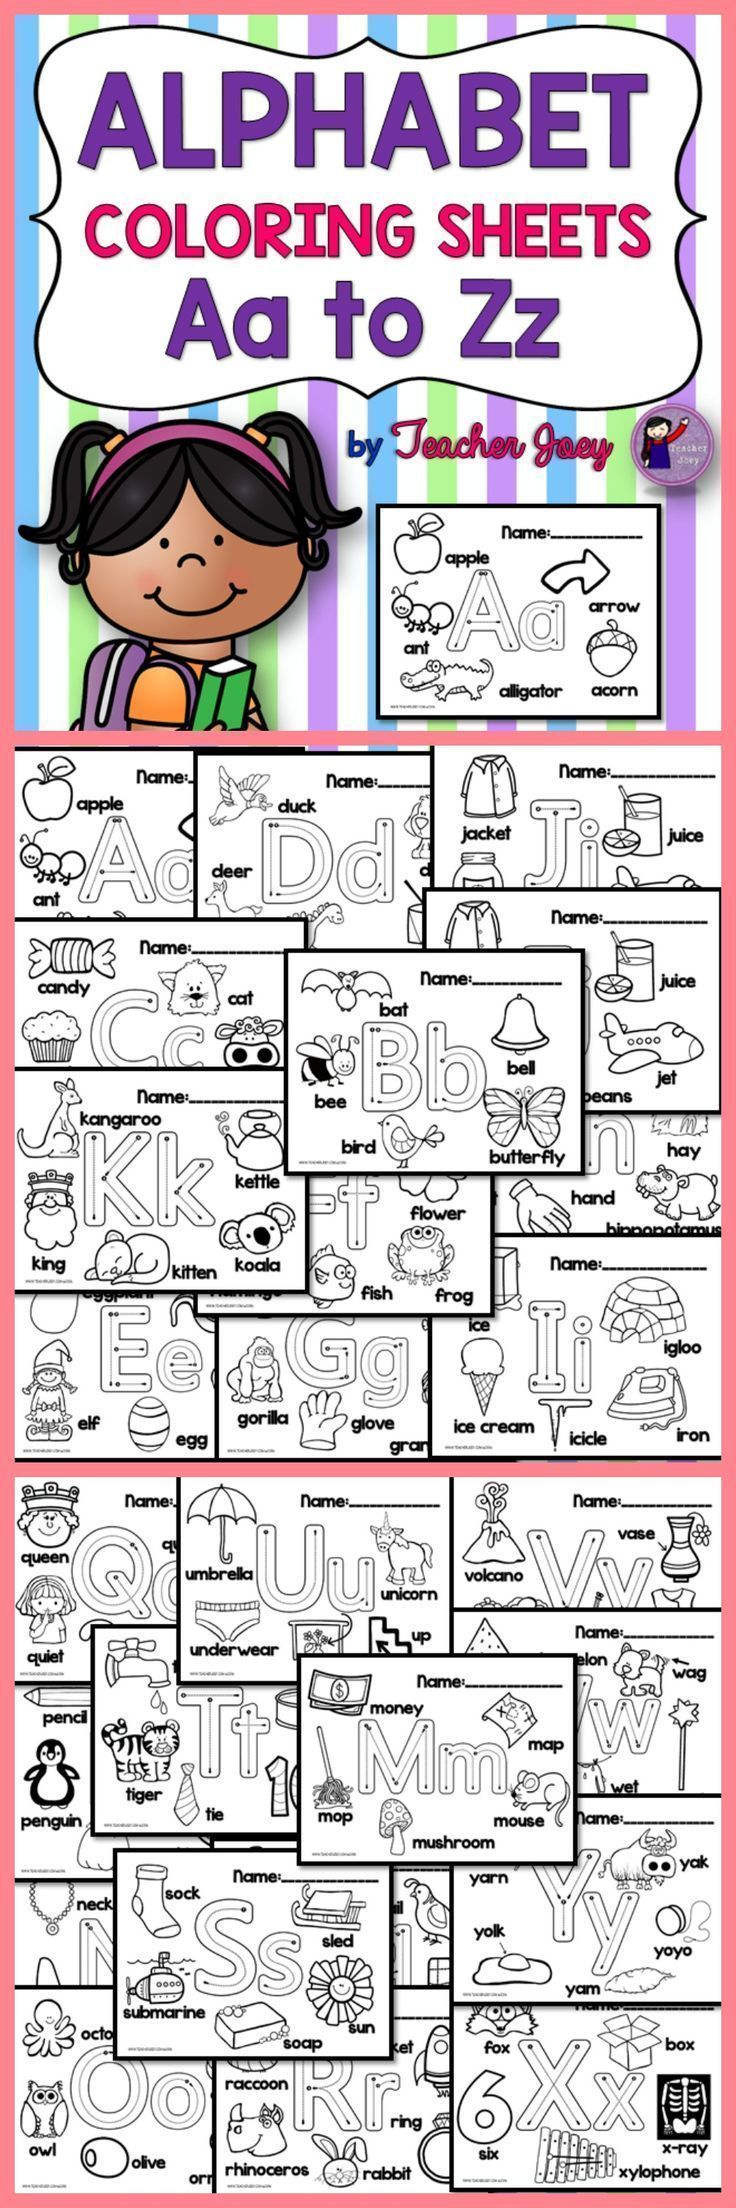 Alphabet Coloring Sheets | Alphabet letters, Activities and School